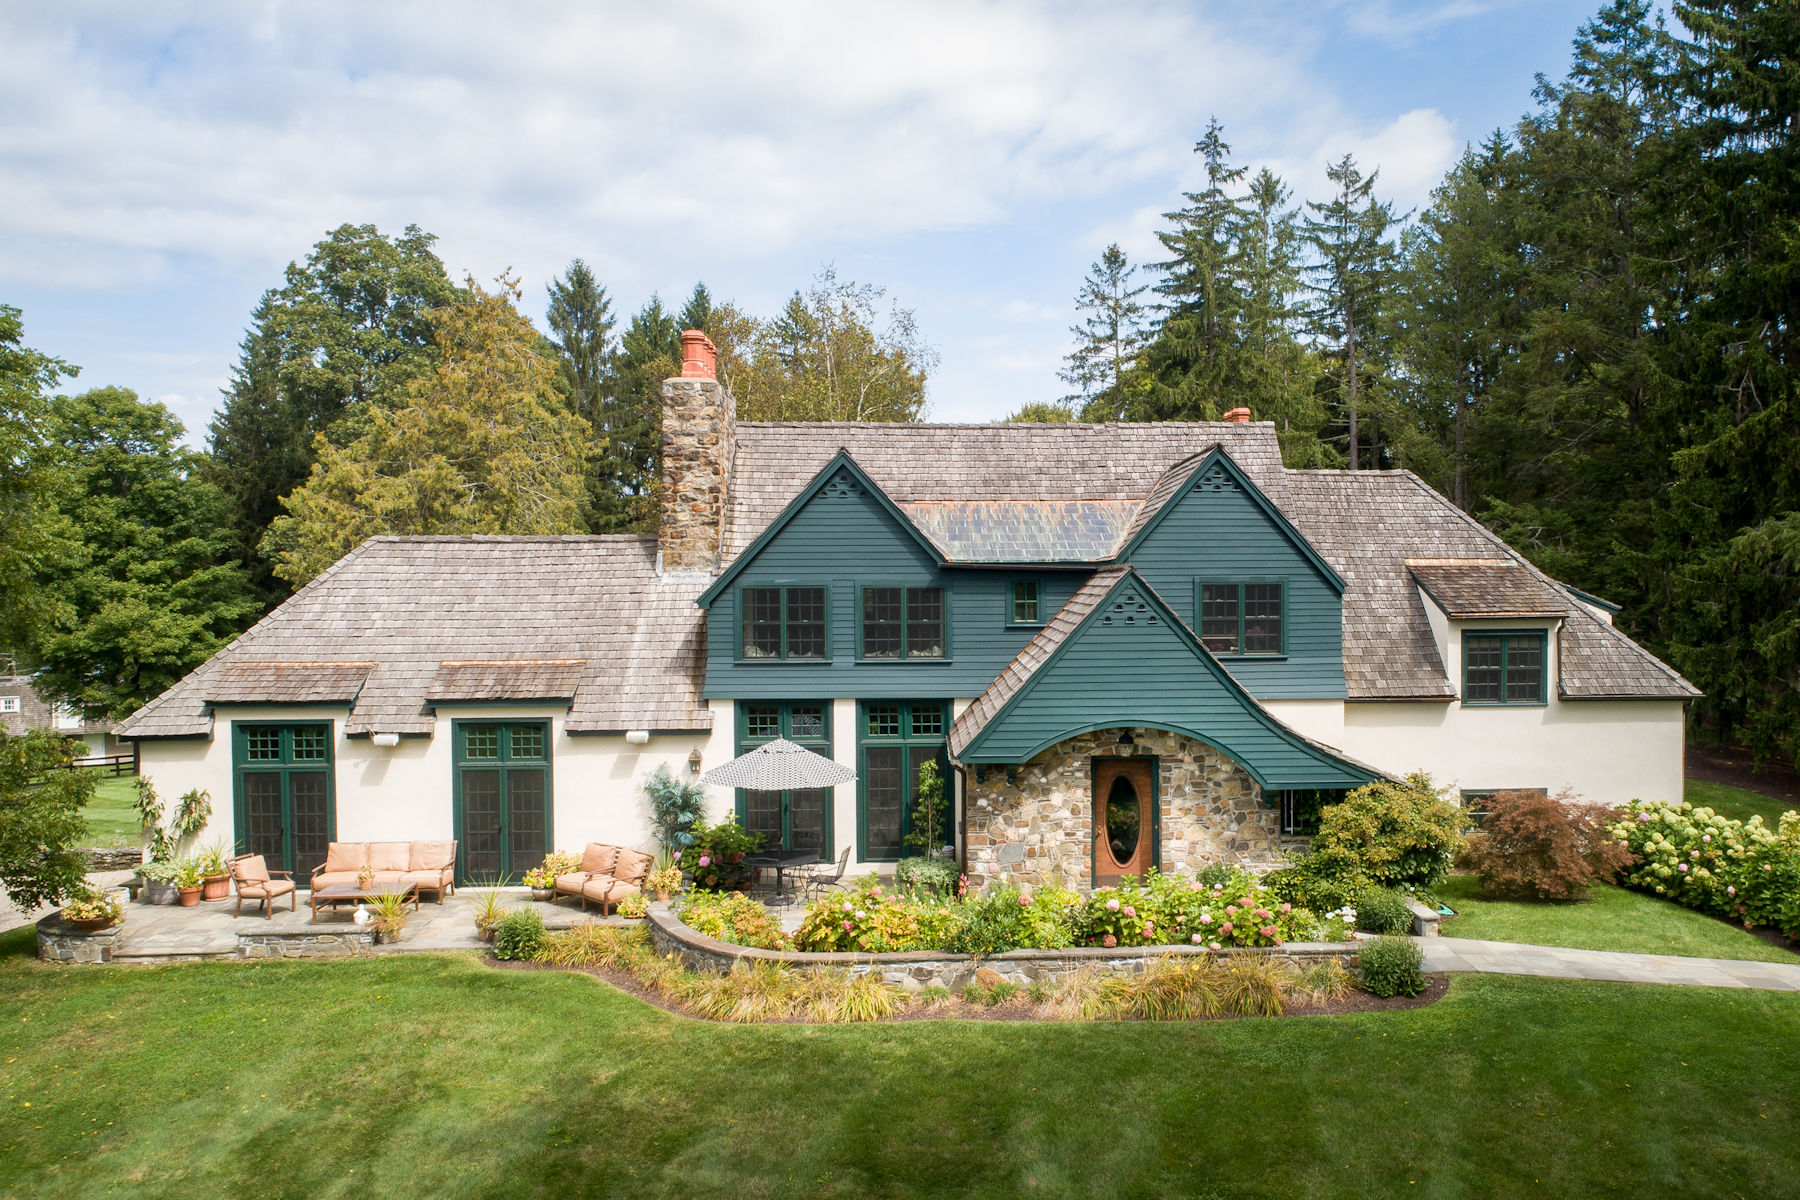 Single Family Homes for Active at Grace Hill Farm 147 Altamont Road Millbrook, New York 12545 United States